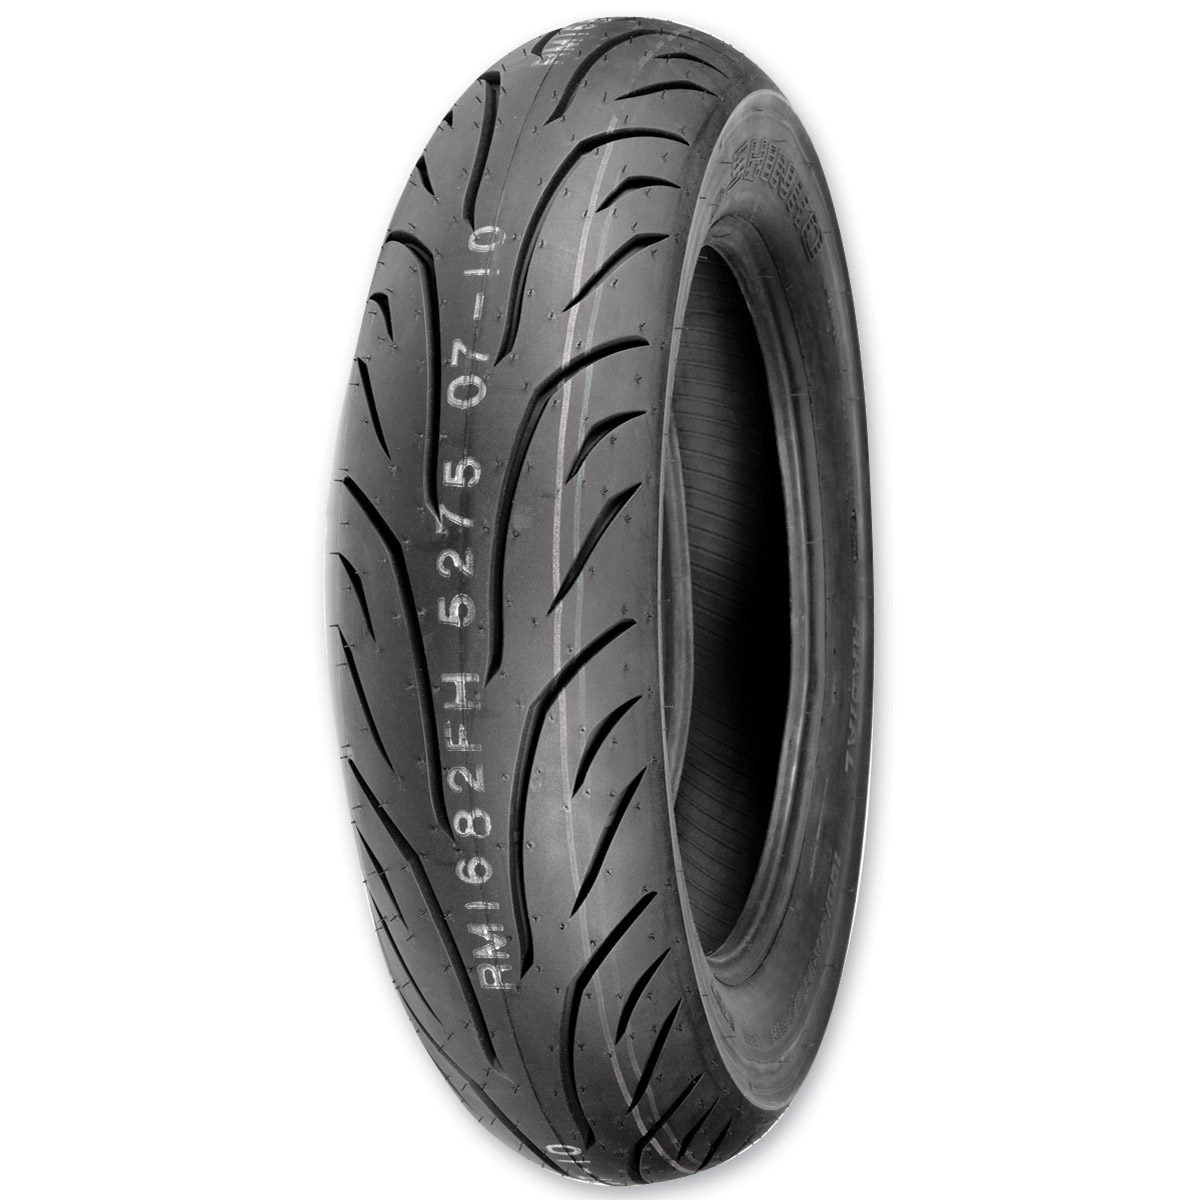 Shinko SE890 Journey 160/80R16 Rear Tire